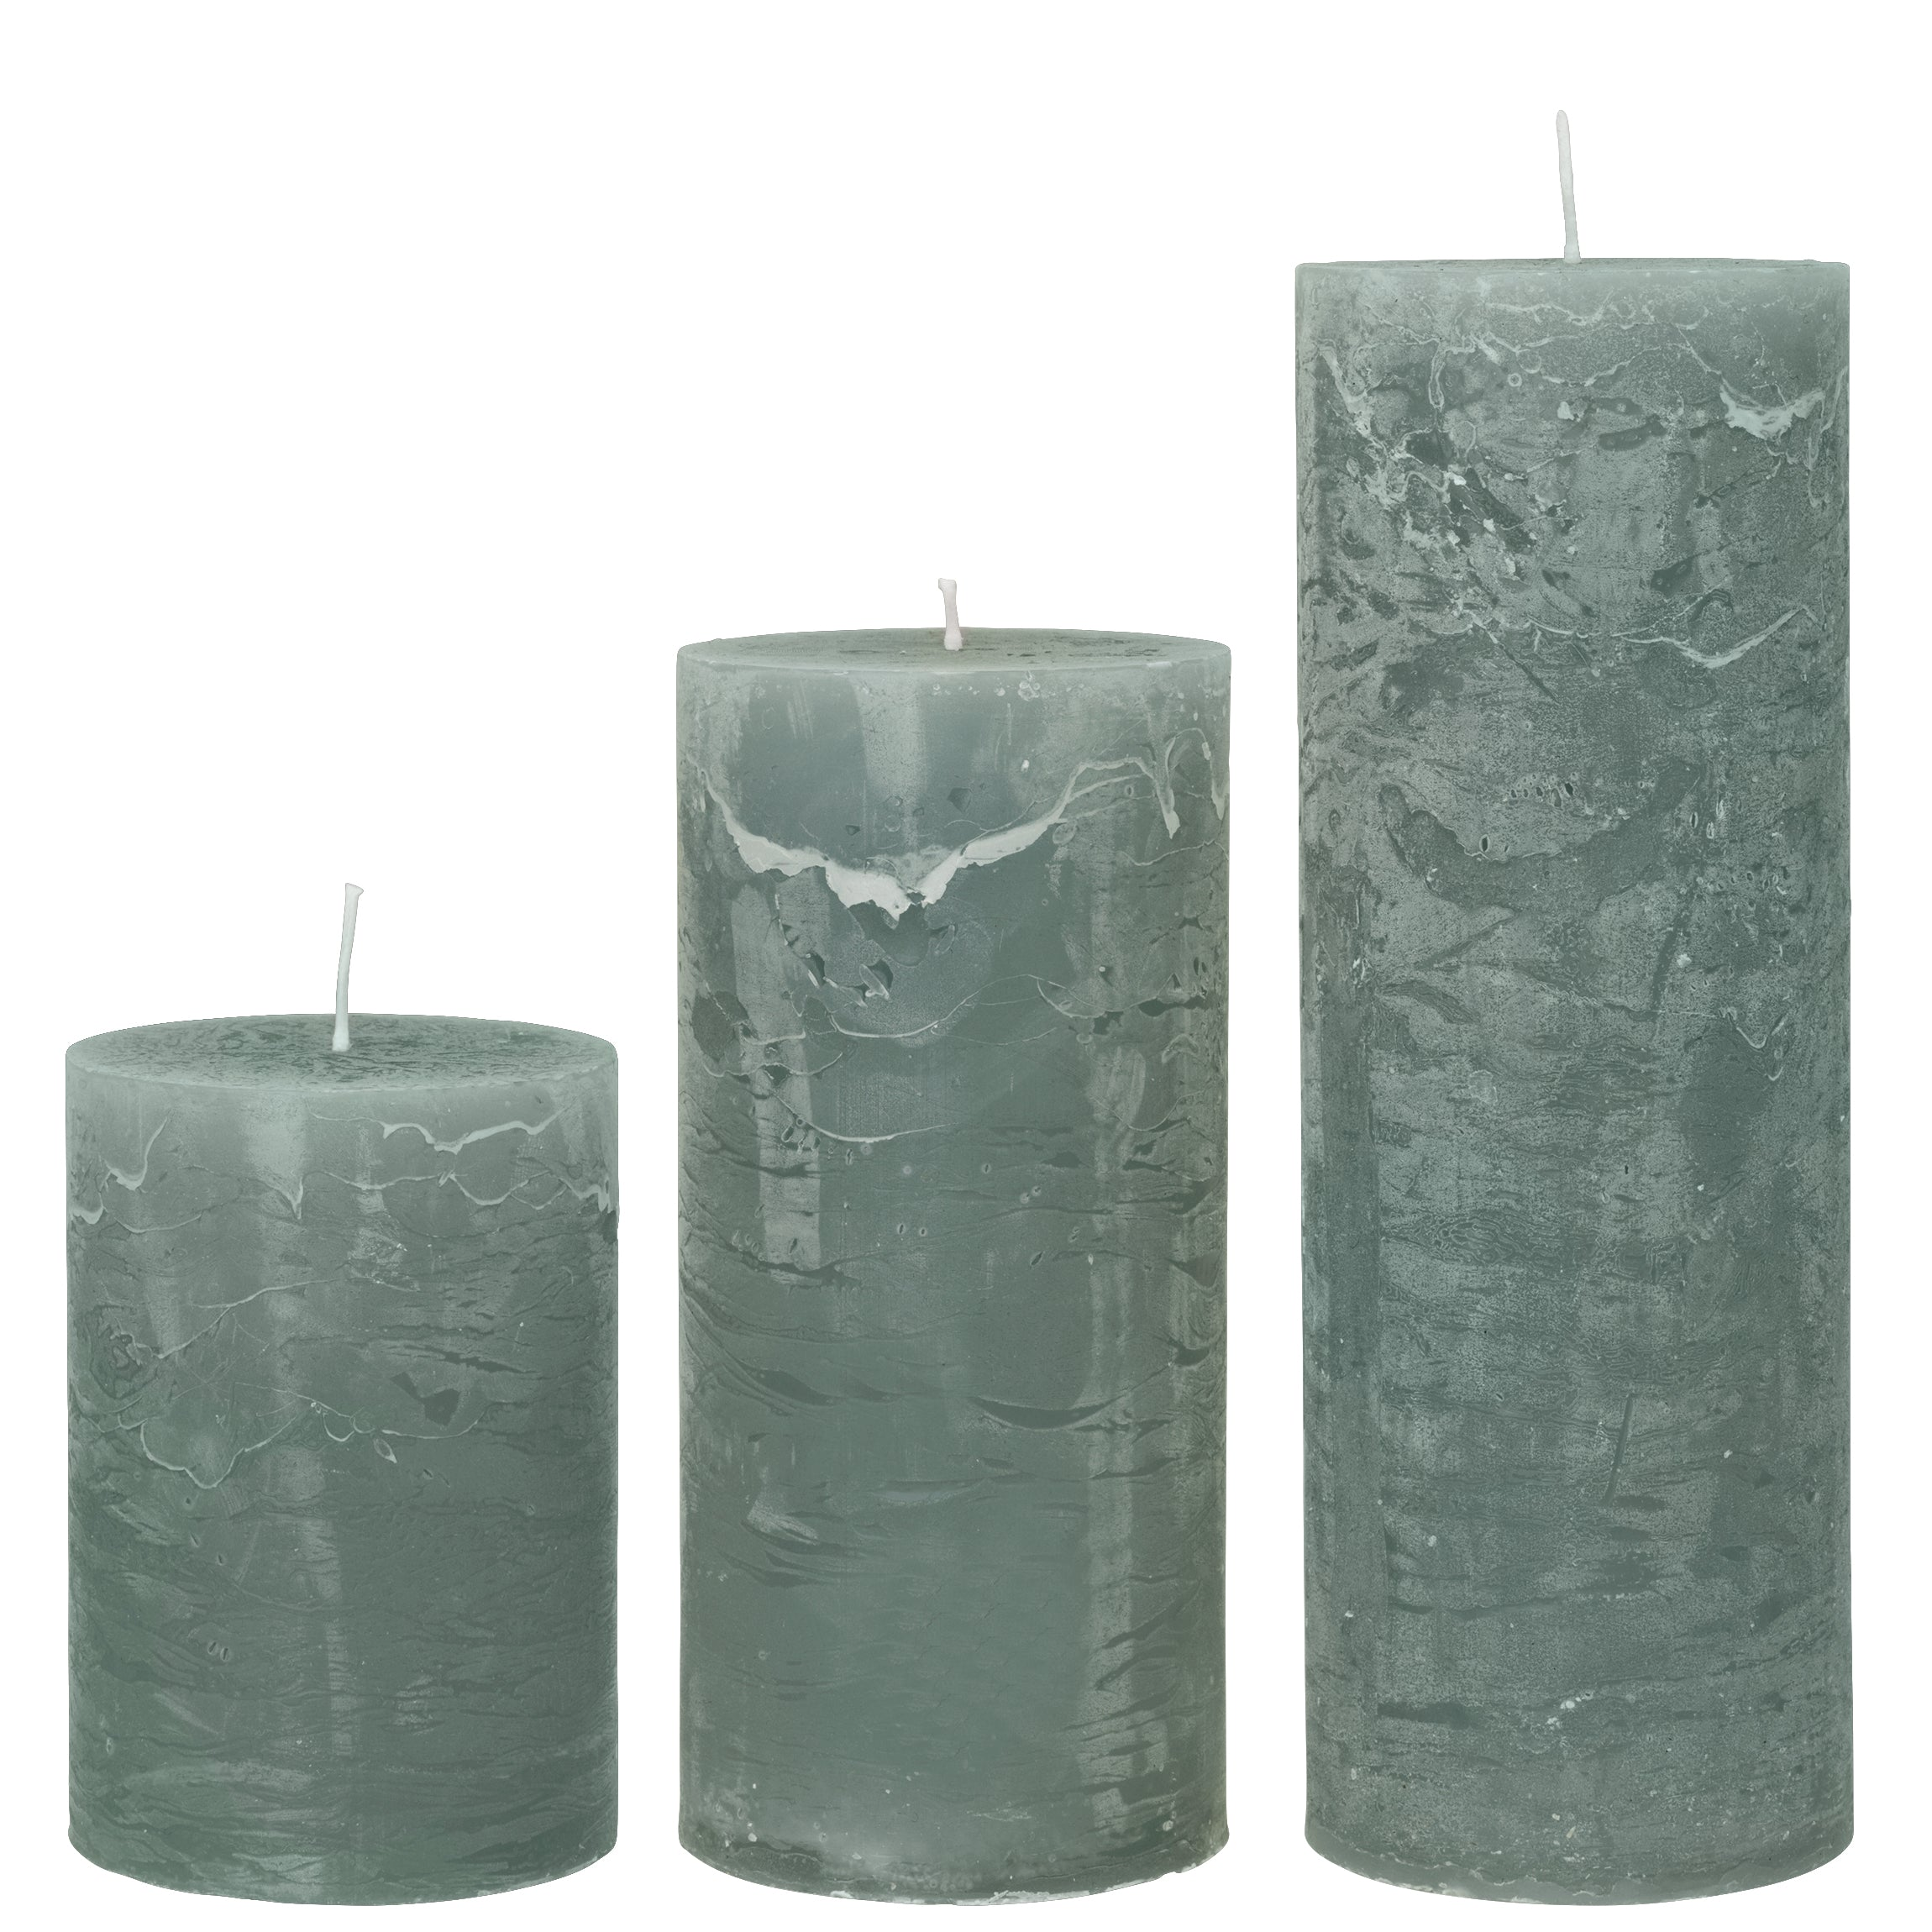 Moss Rustic Pillar Candle